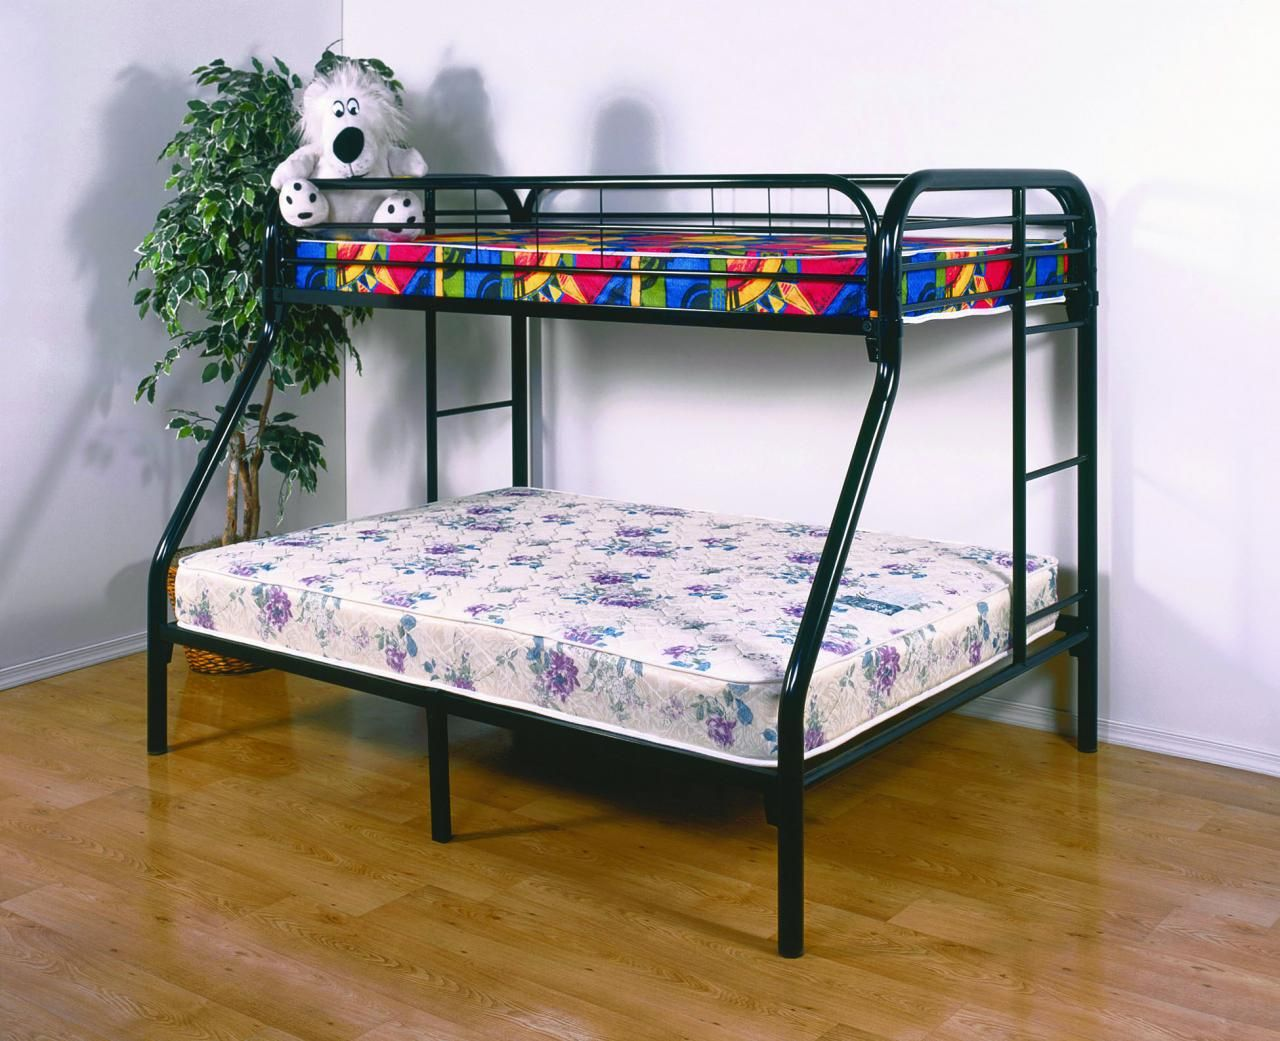 Futon Bunk Beds With Mattress Included Best Interior House Paint Check More At Http Billiepiperfan Com Futon Loft Bed Frame Metal Bunk Beds Black Bunk Beds Twin bunk beds with mattress included